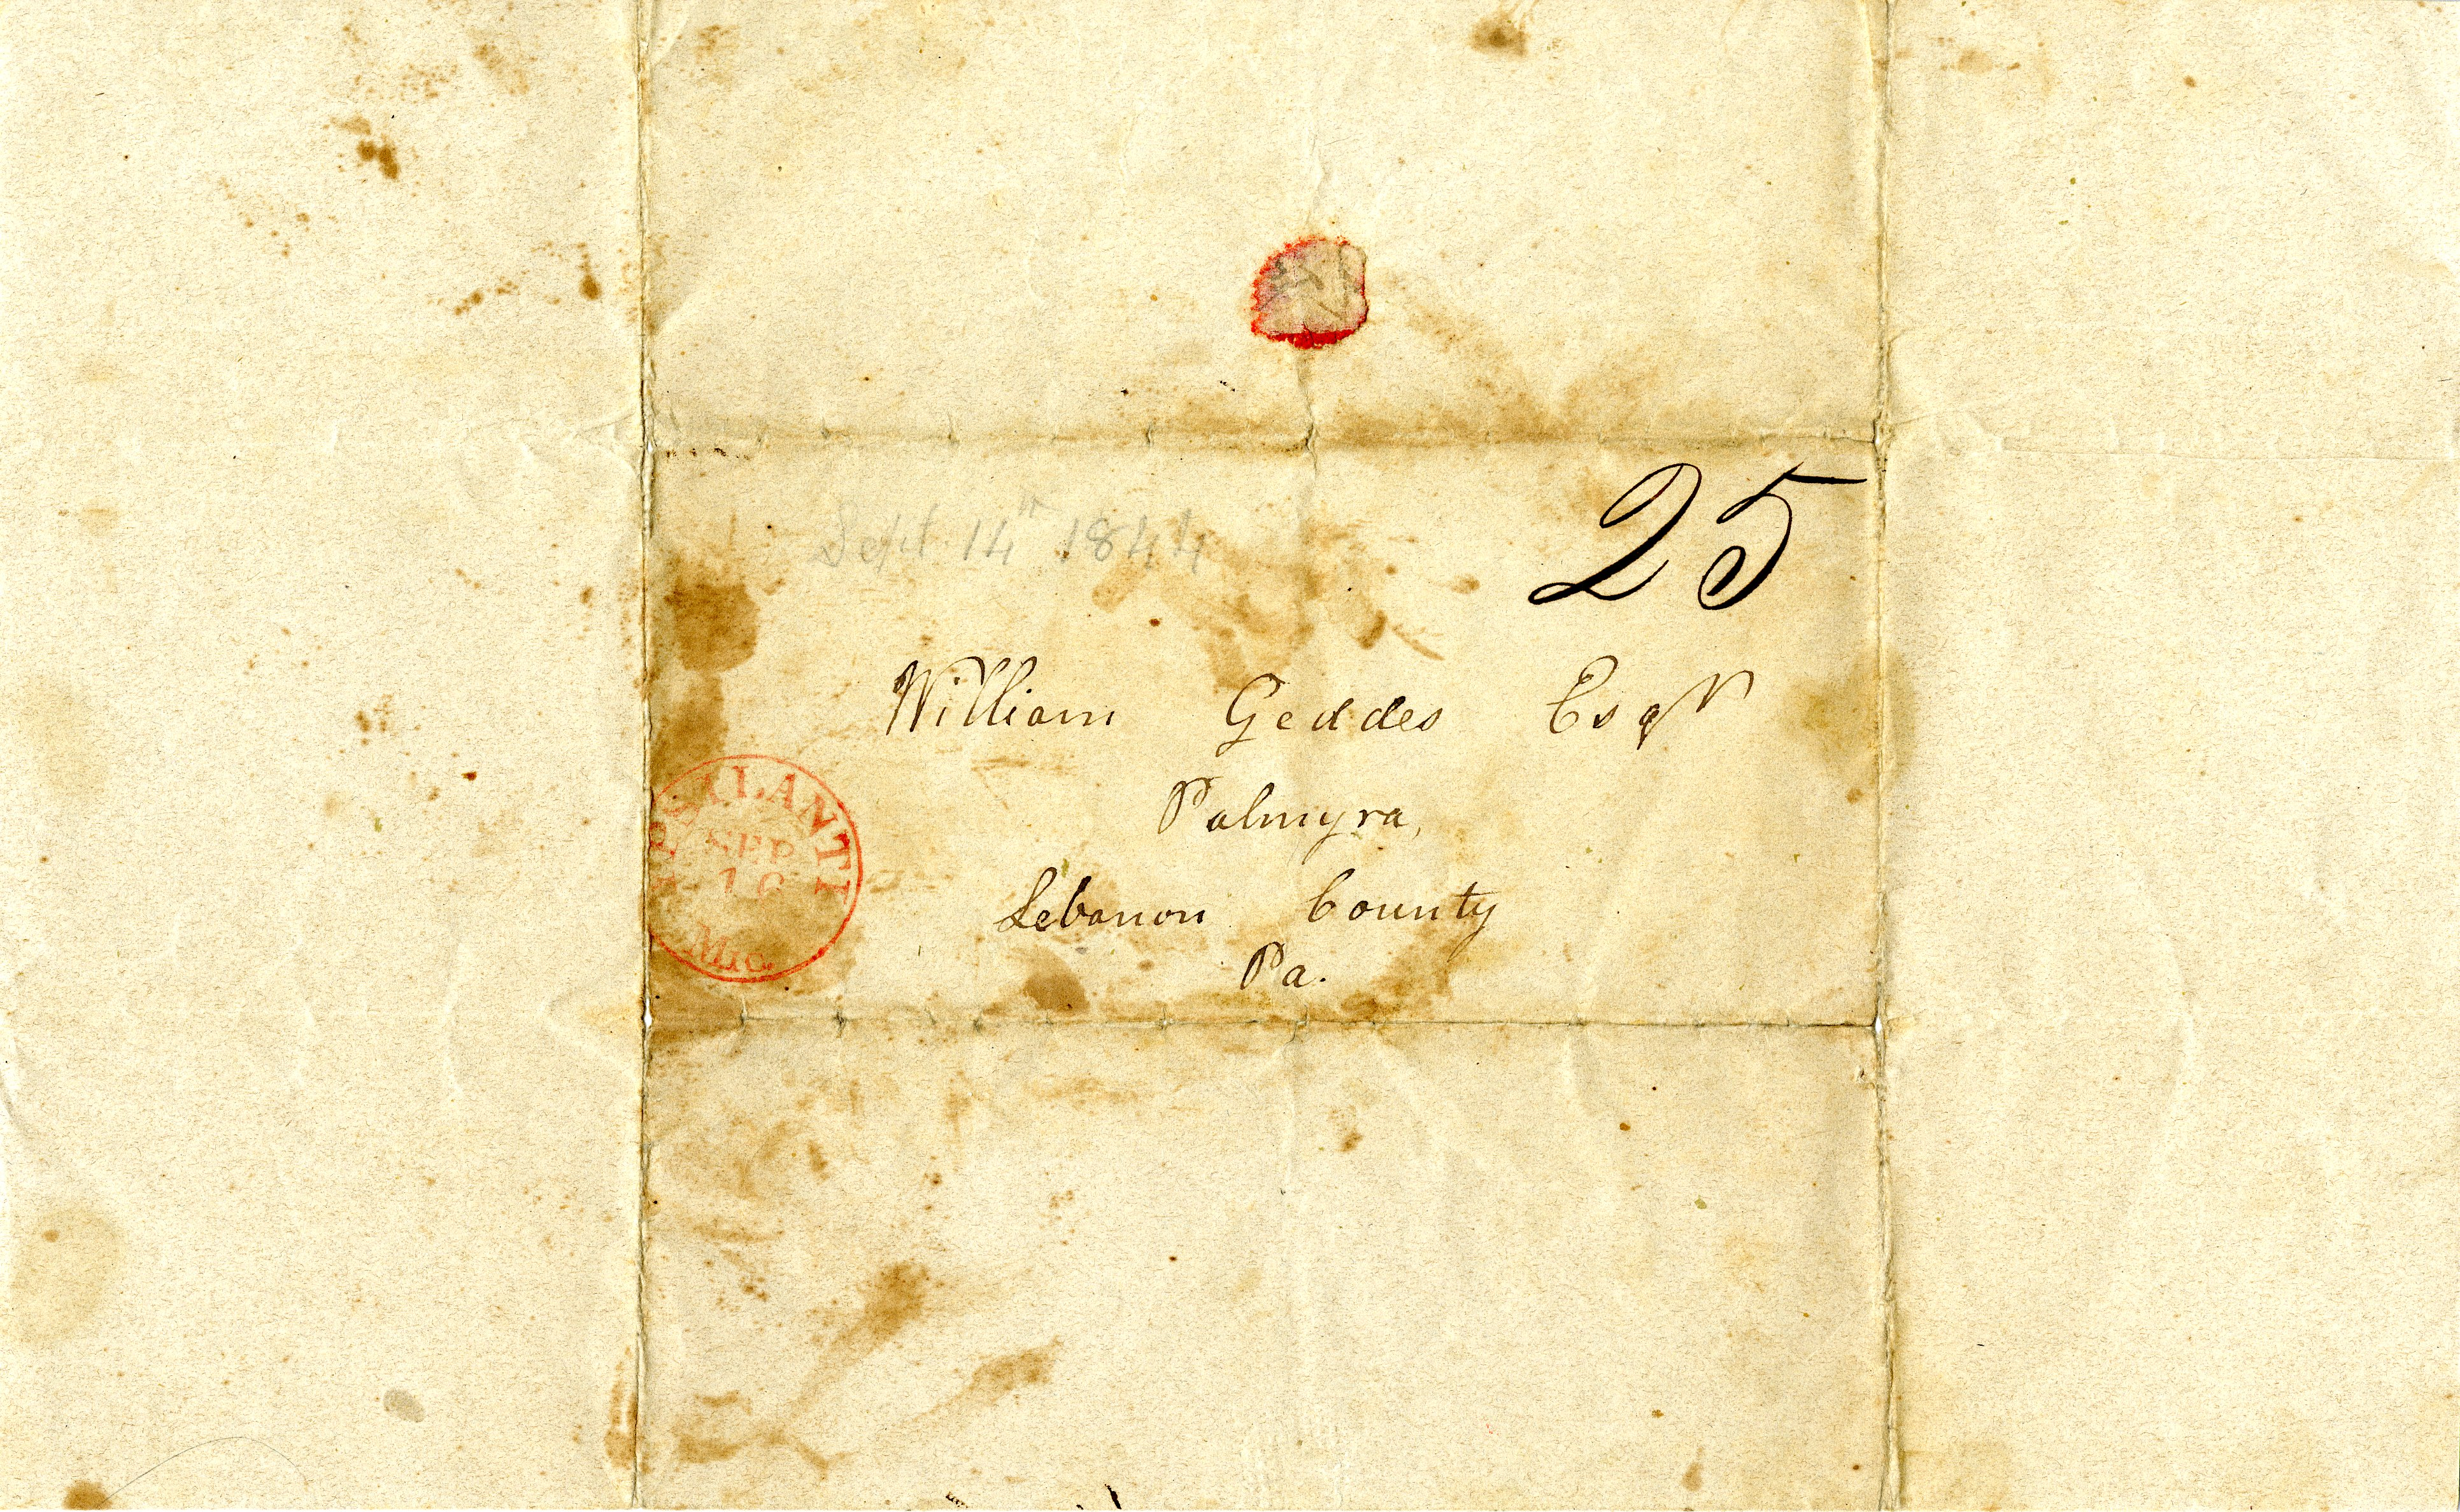 Letter From John Geddes to William Geddes, September 14, 1844 image